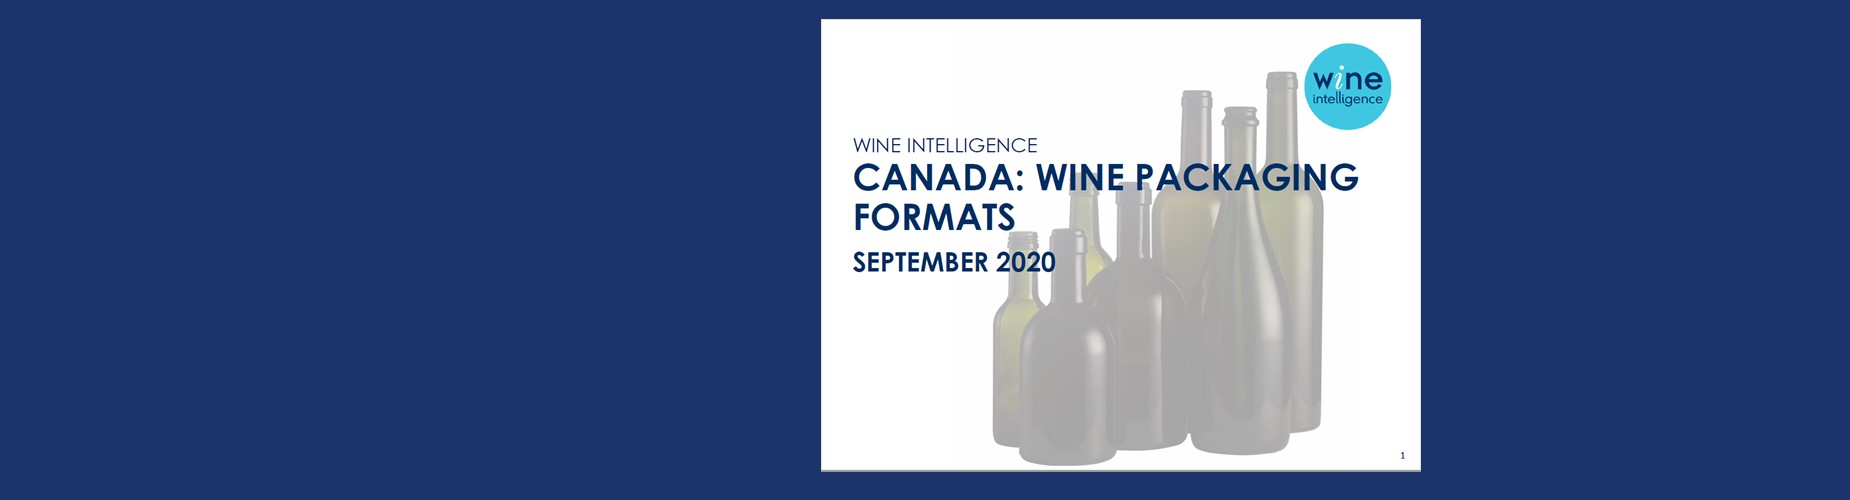 canada packaging 2020 1 - About reports shop